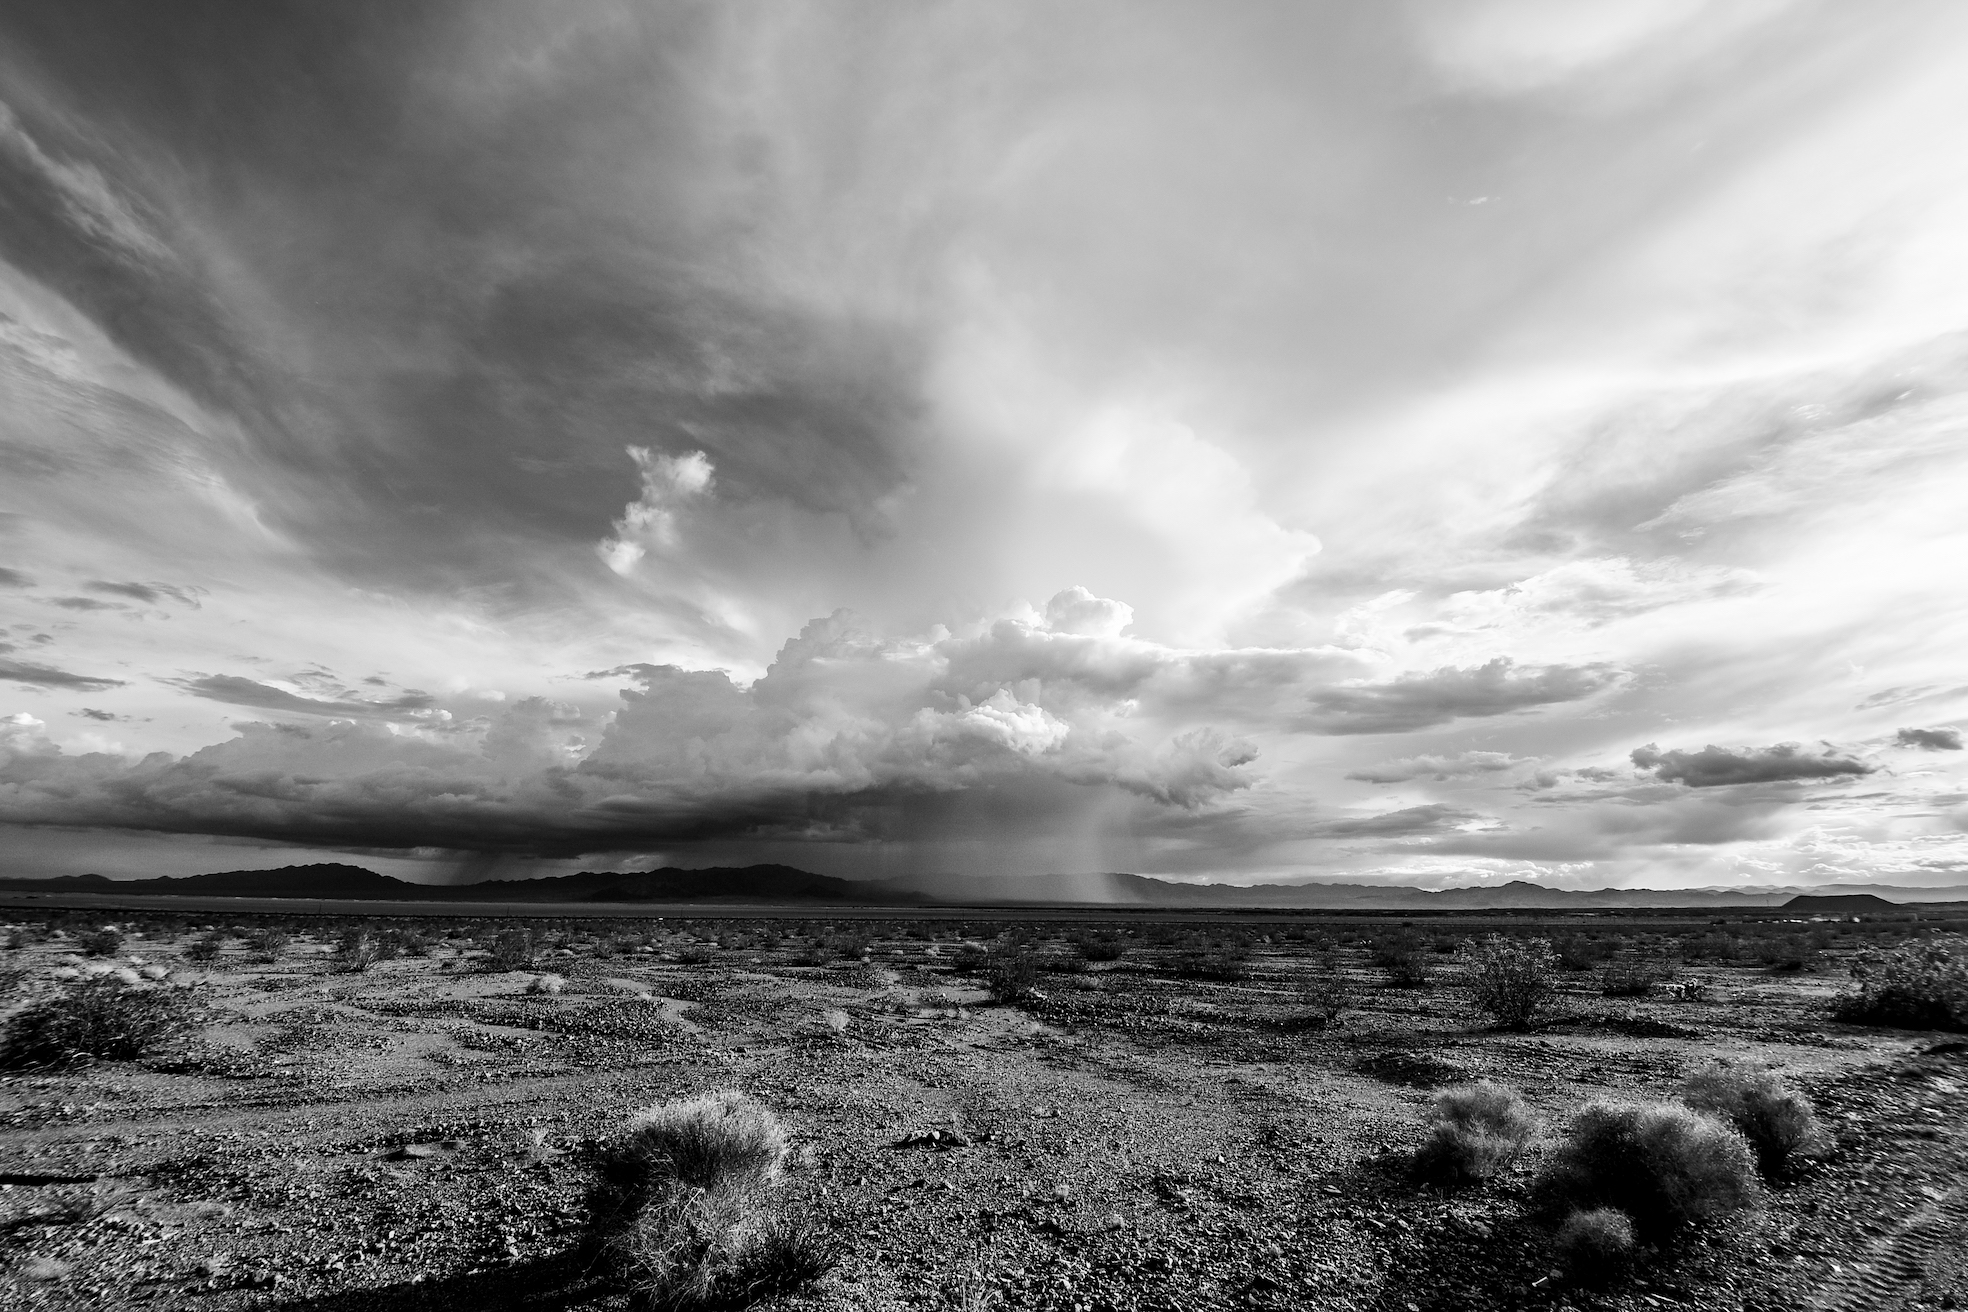 joshua tree, black and white joshua tree, palm desert, mojave desert, desert storm, ashley marie myers